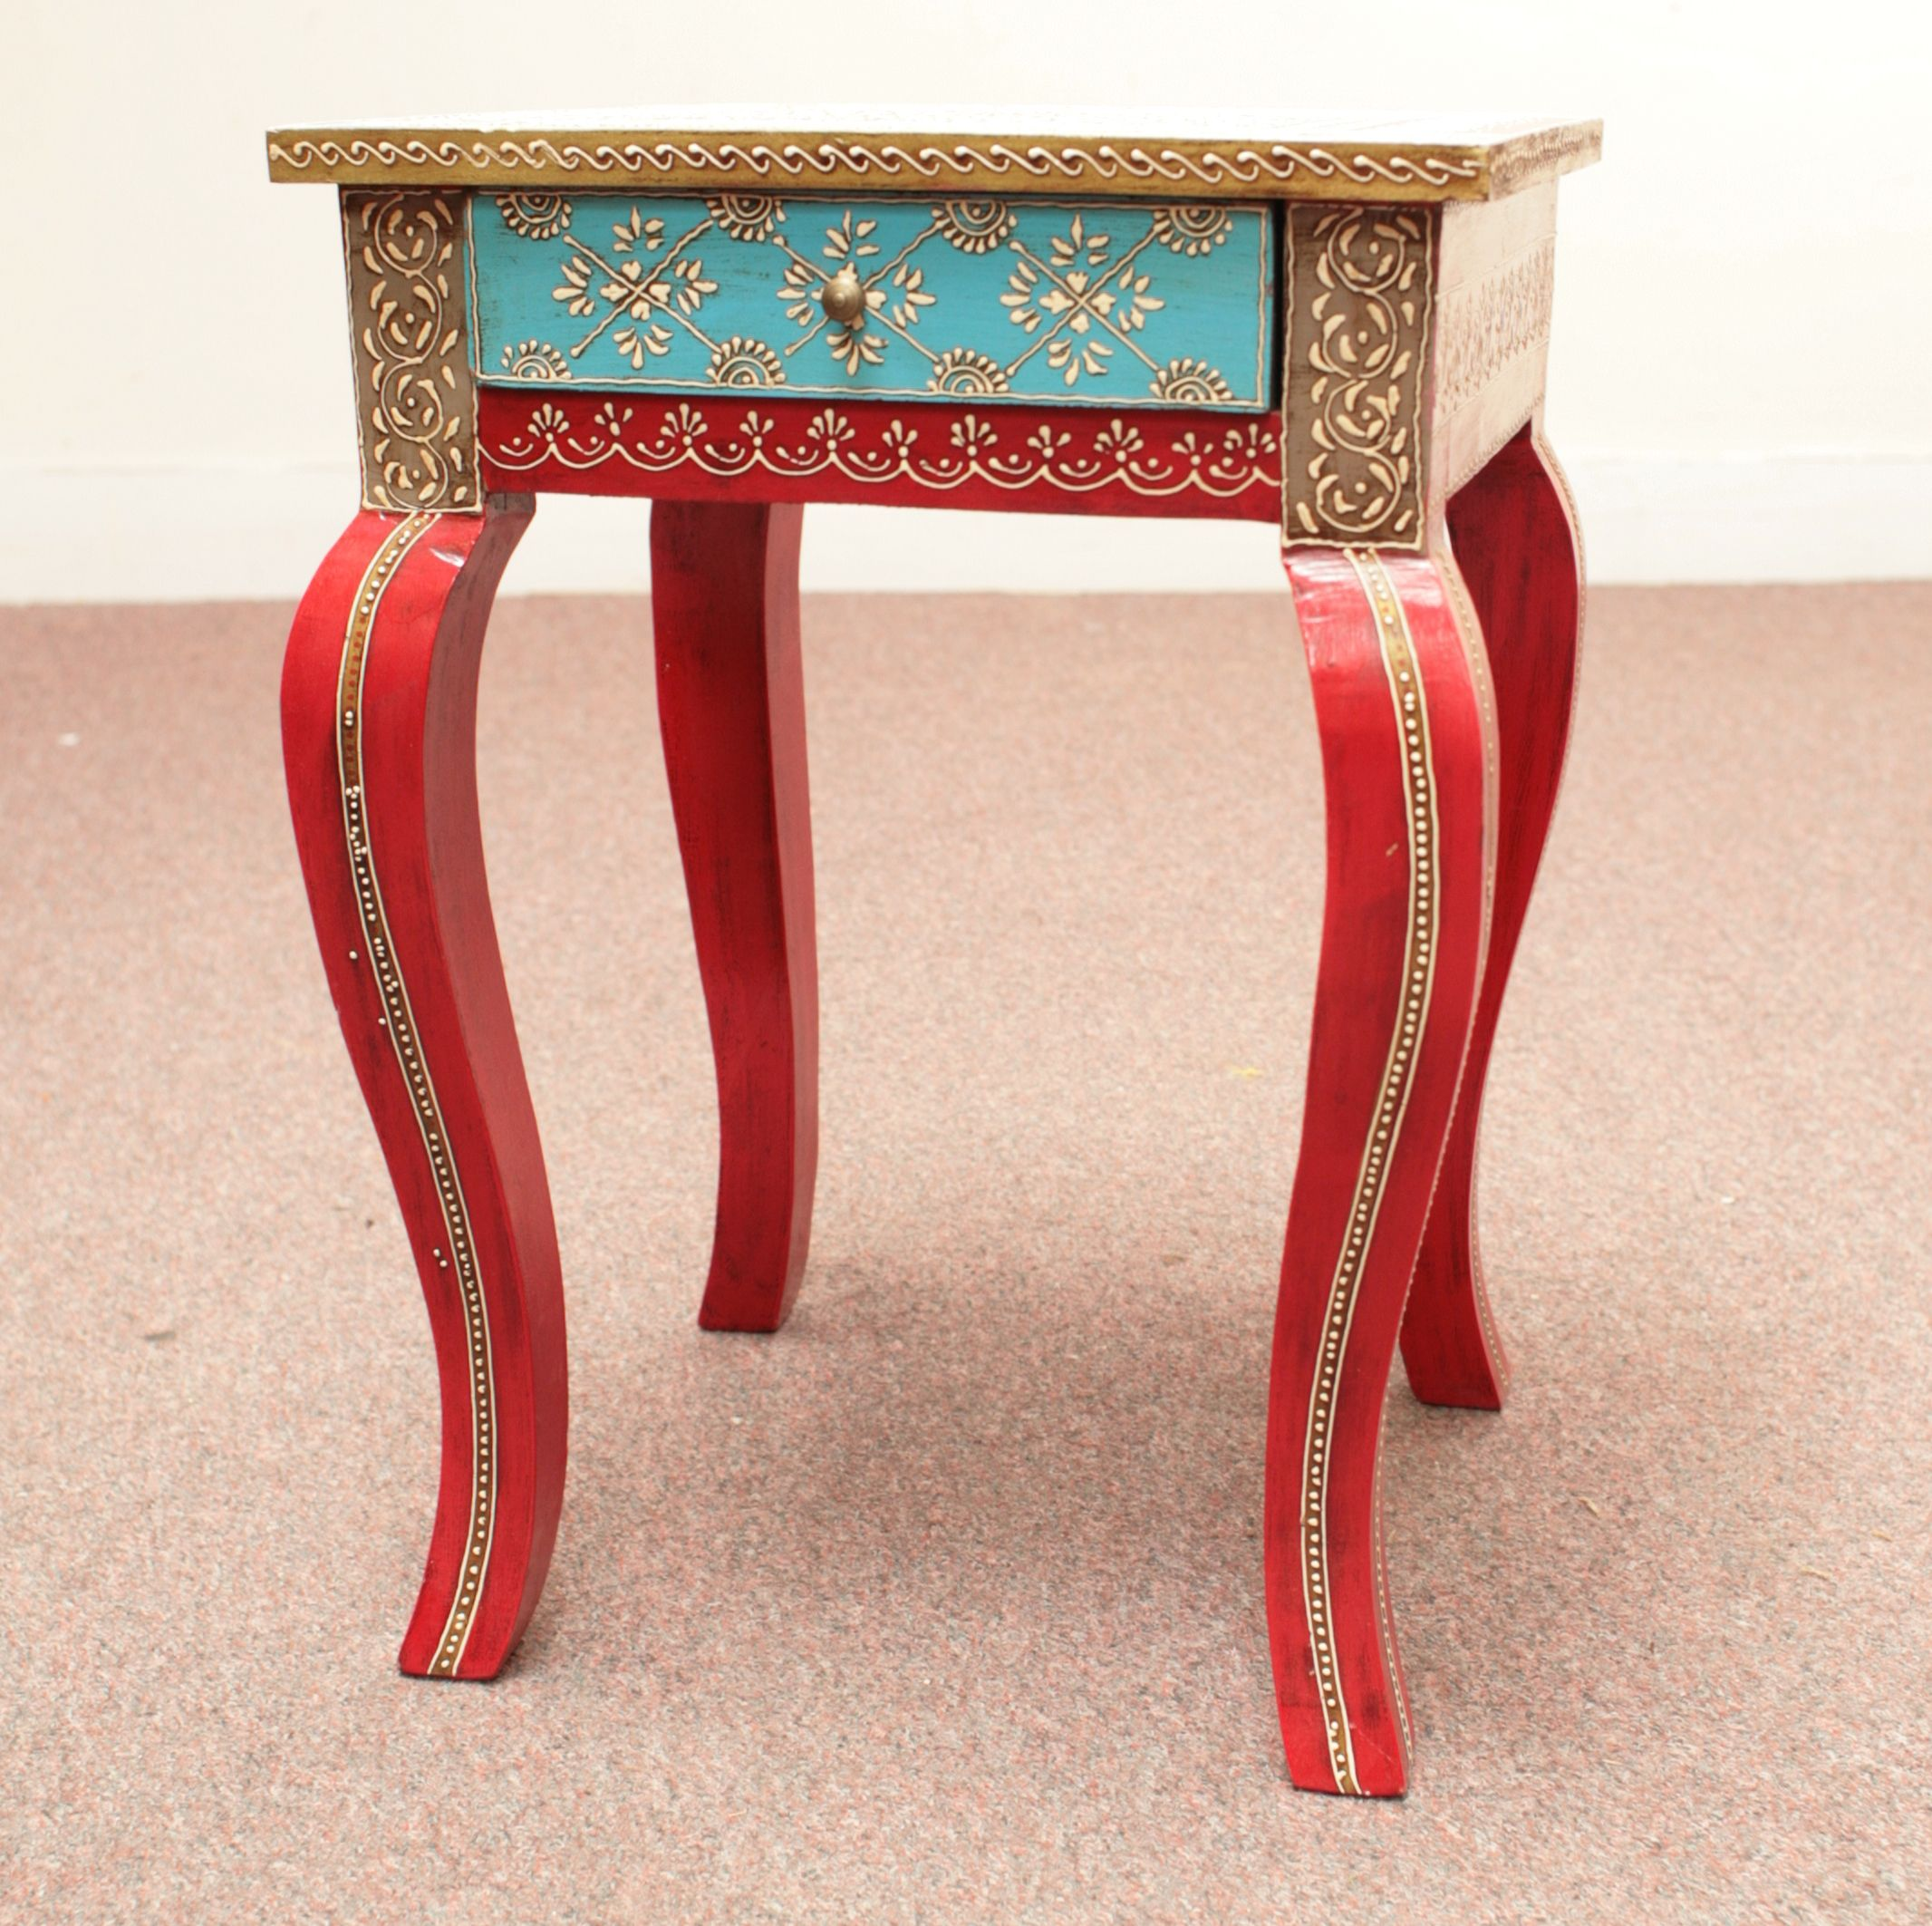 Painted Furniture From India | Indian Furniture  Handpainted Side Table Dsc0126